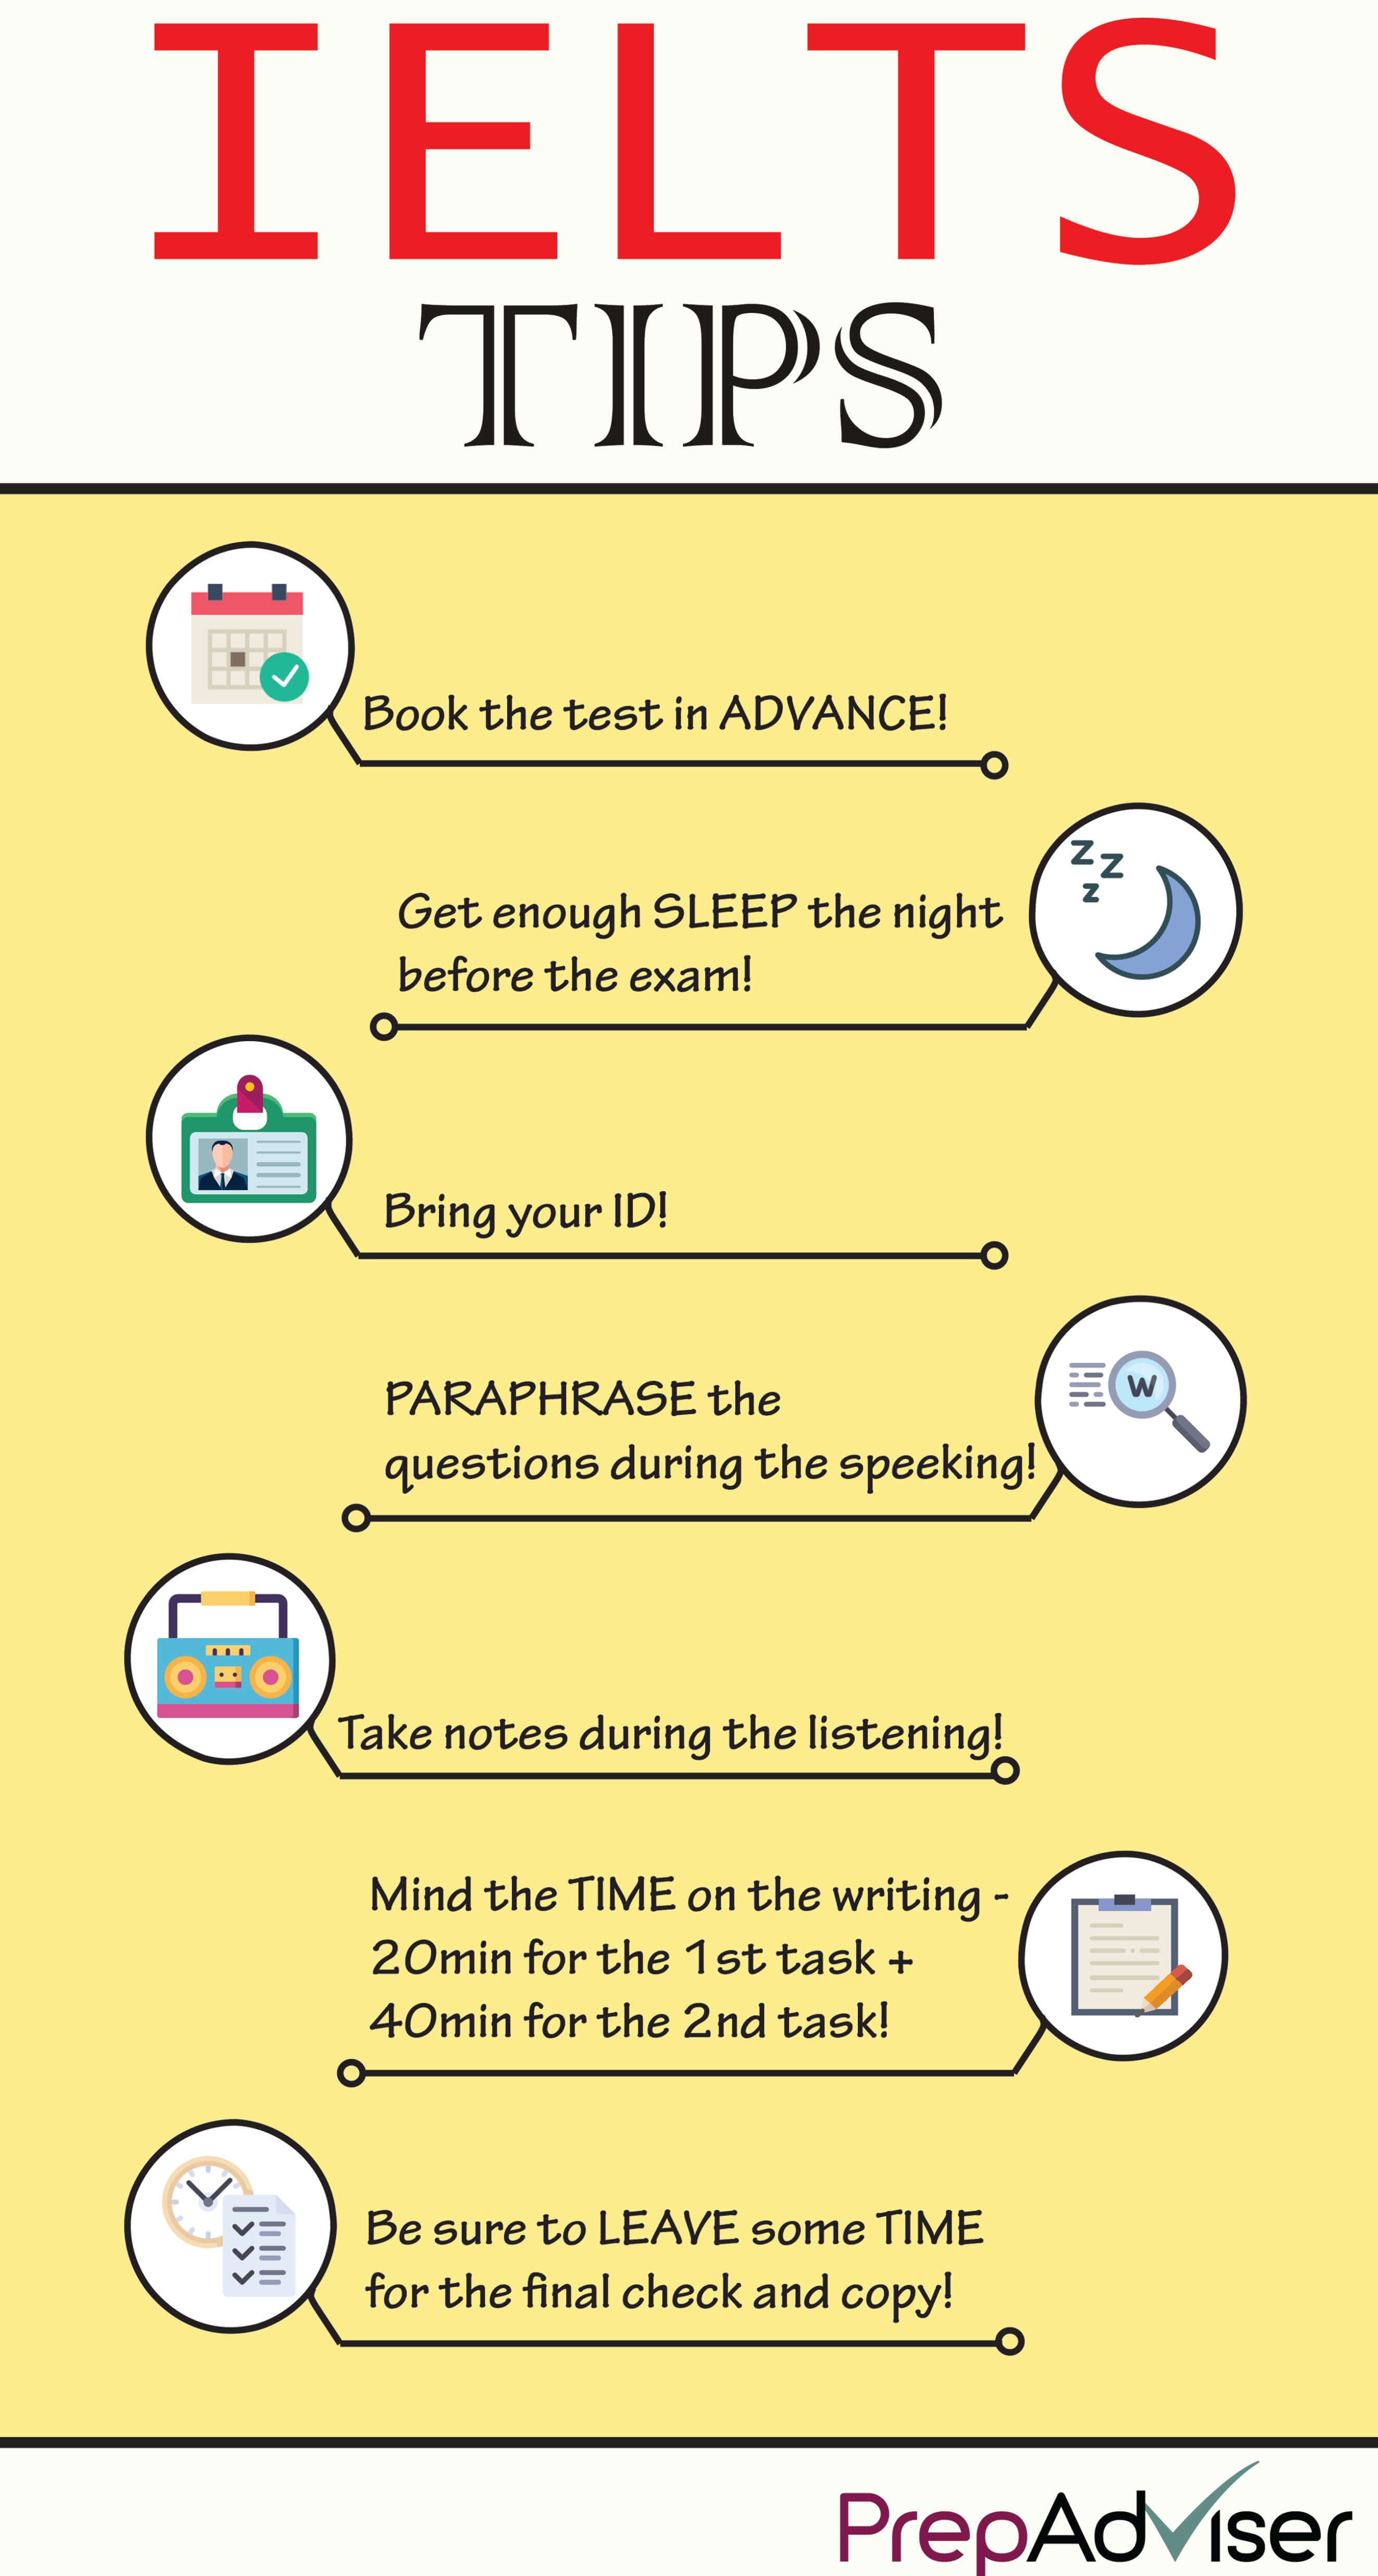 The IELTS Test tips Infographic